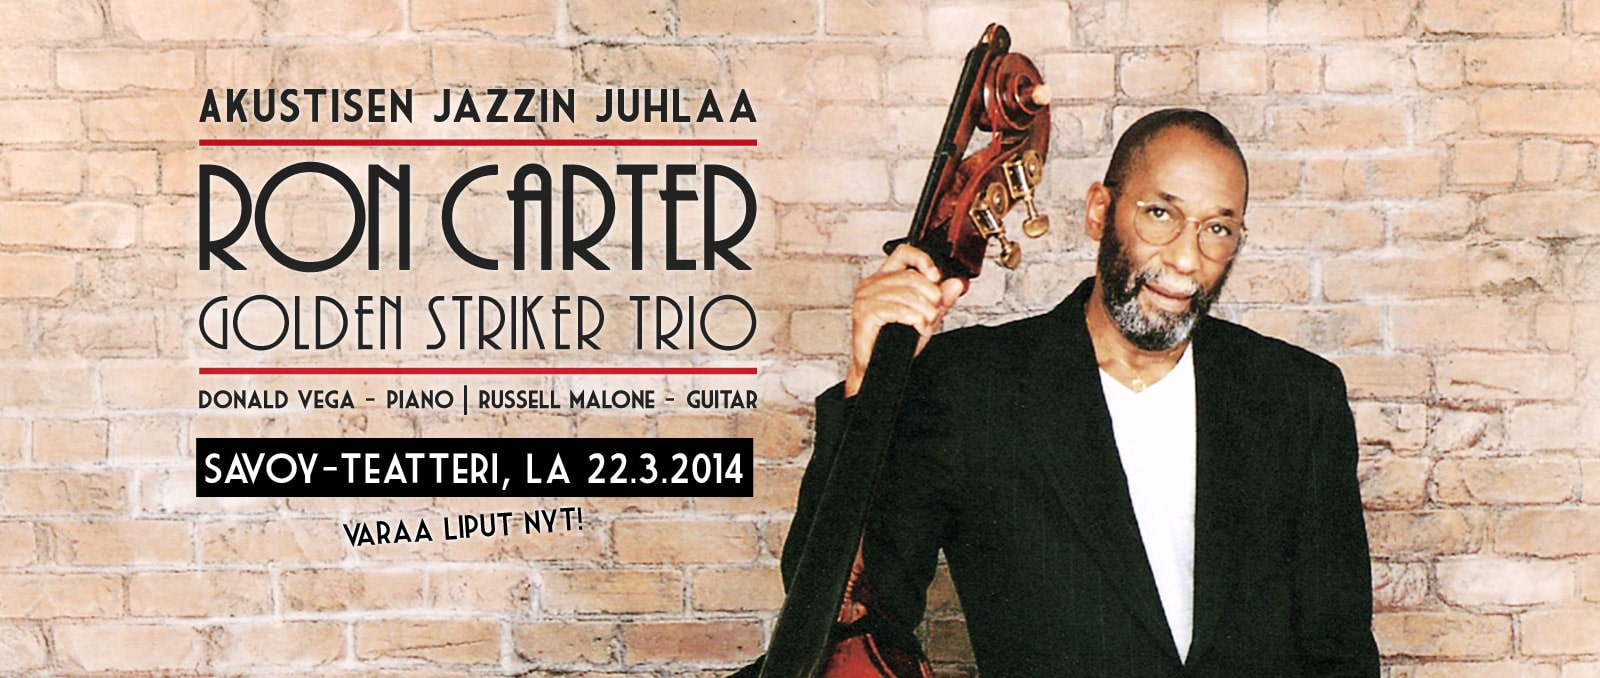 Ron_Carter_Golden_Striker_Trio_Suomeen